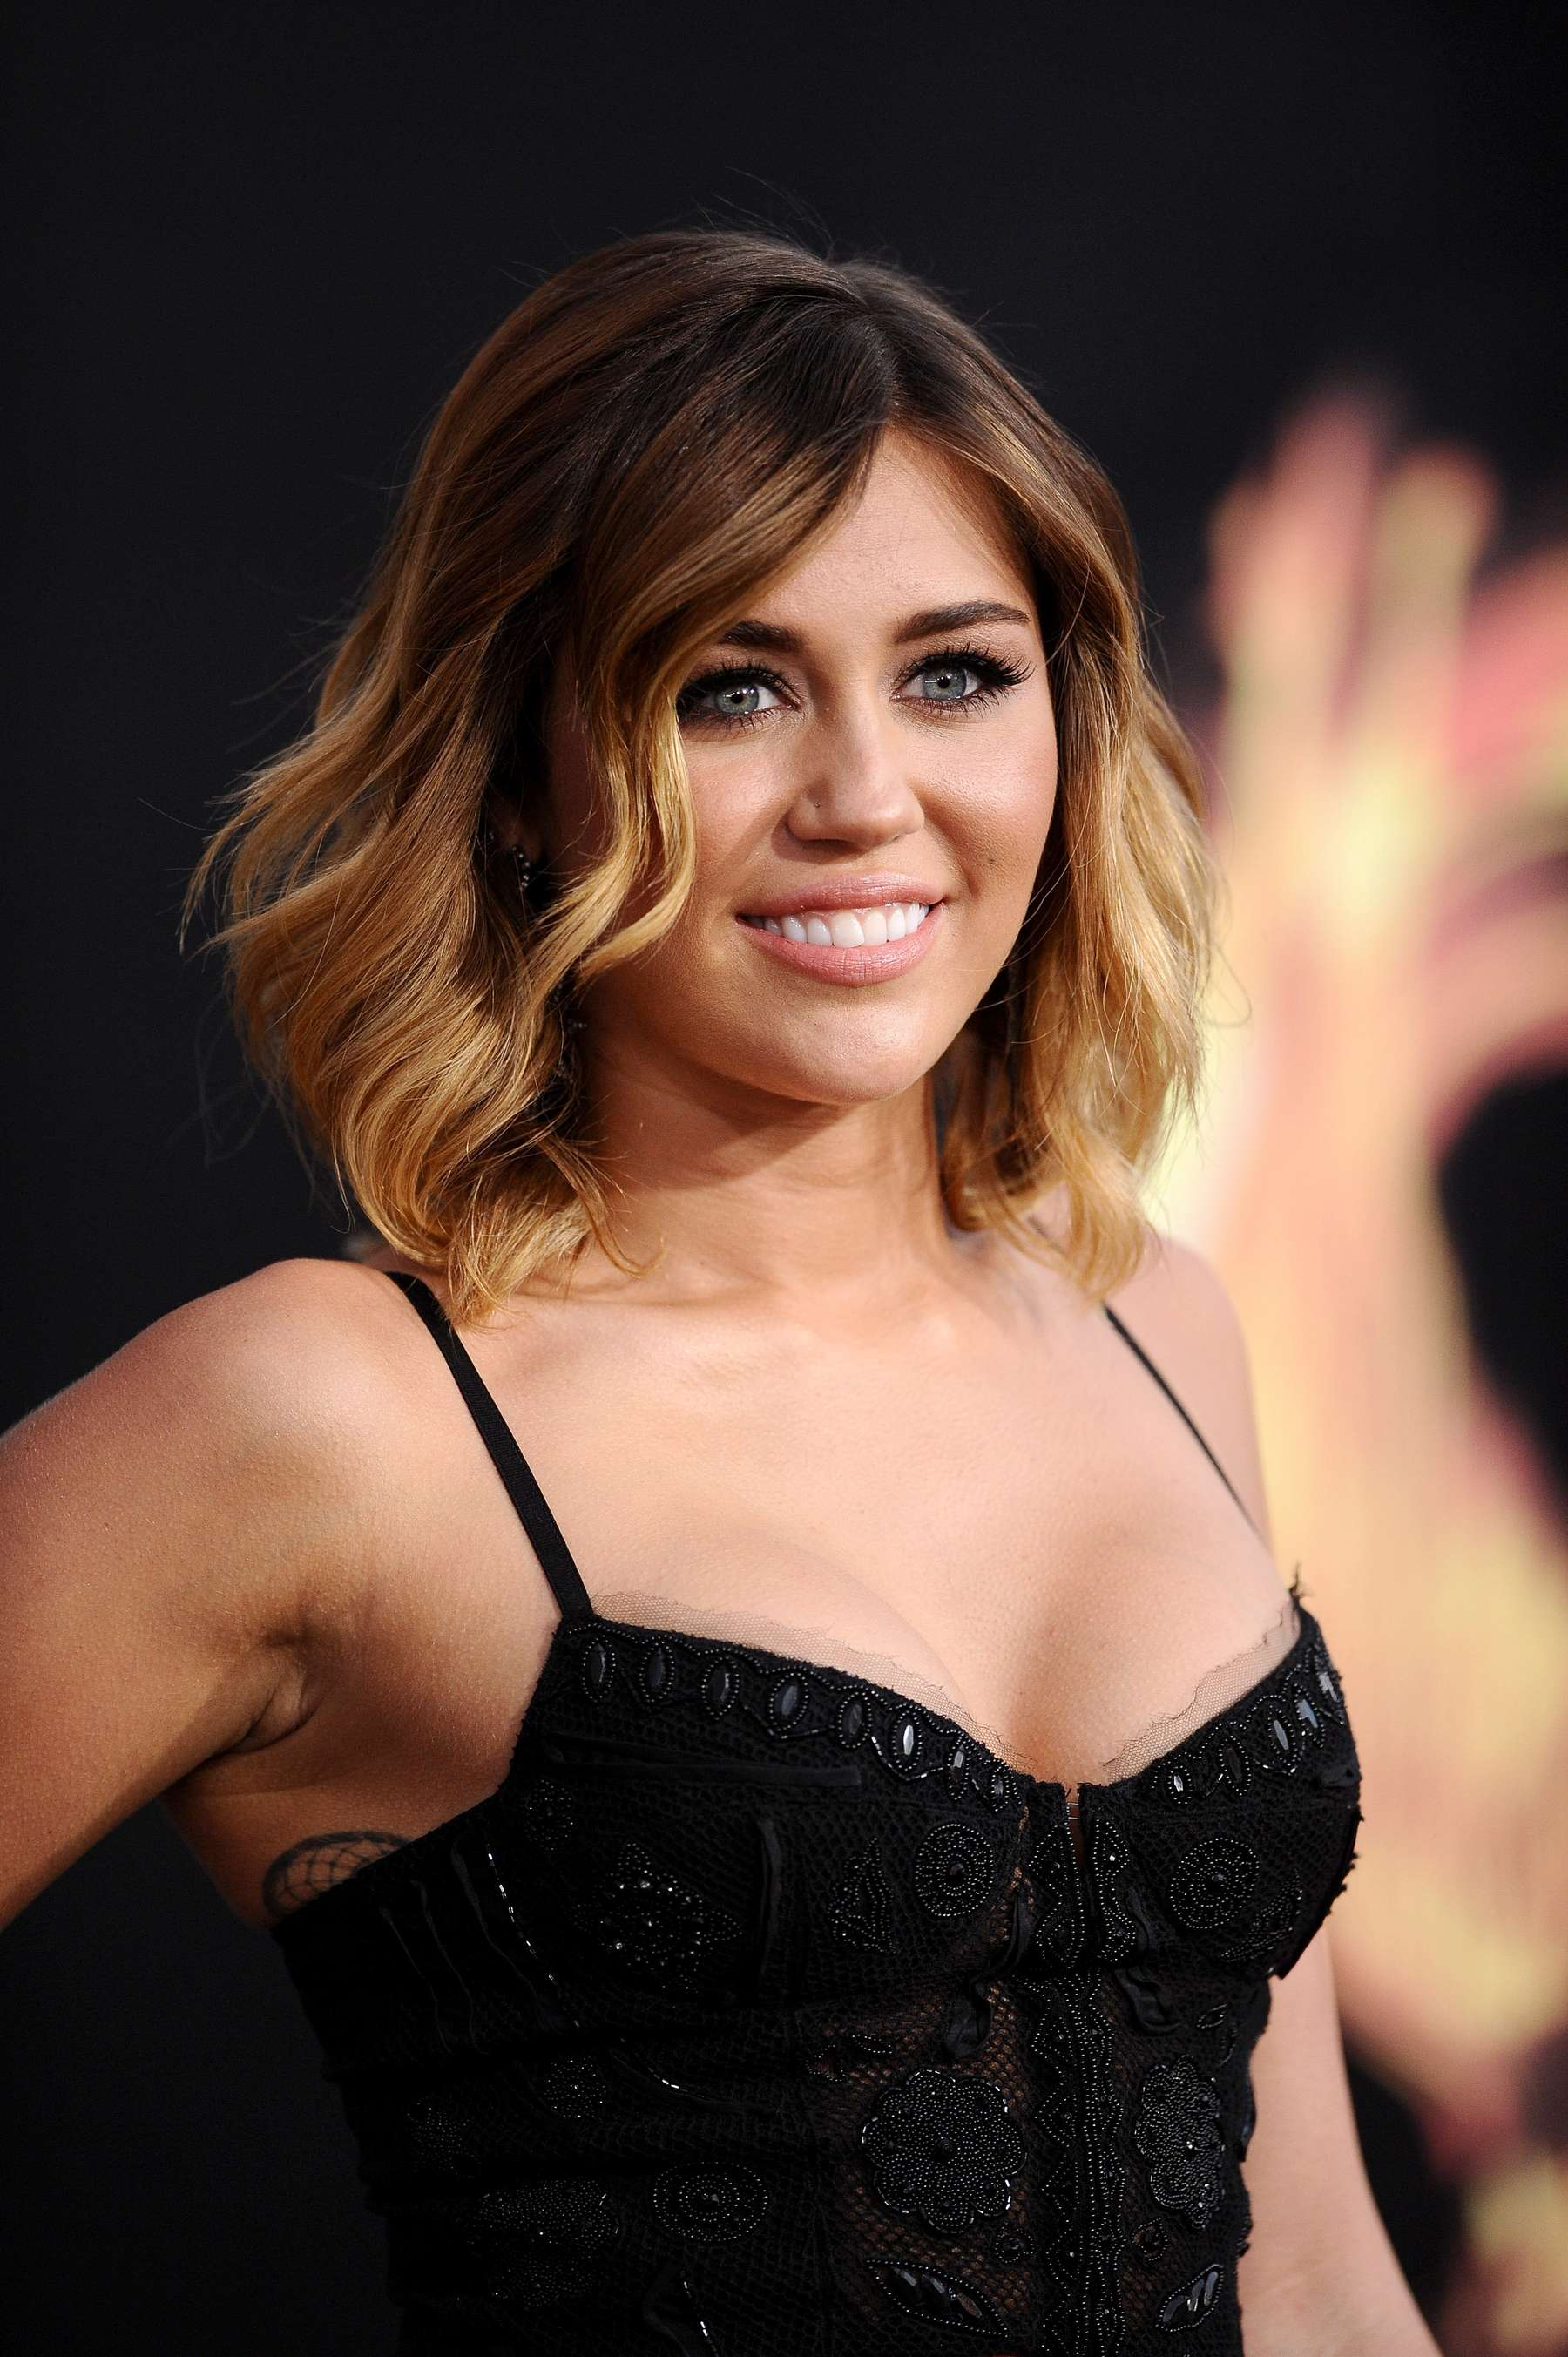 Miley Cyrus 2012 : Miley Cyrus shows big cleavage at The Hunger Games-18